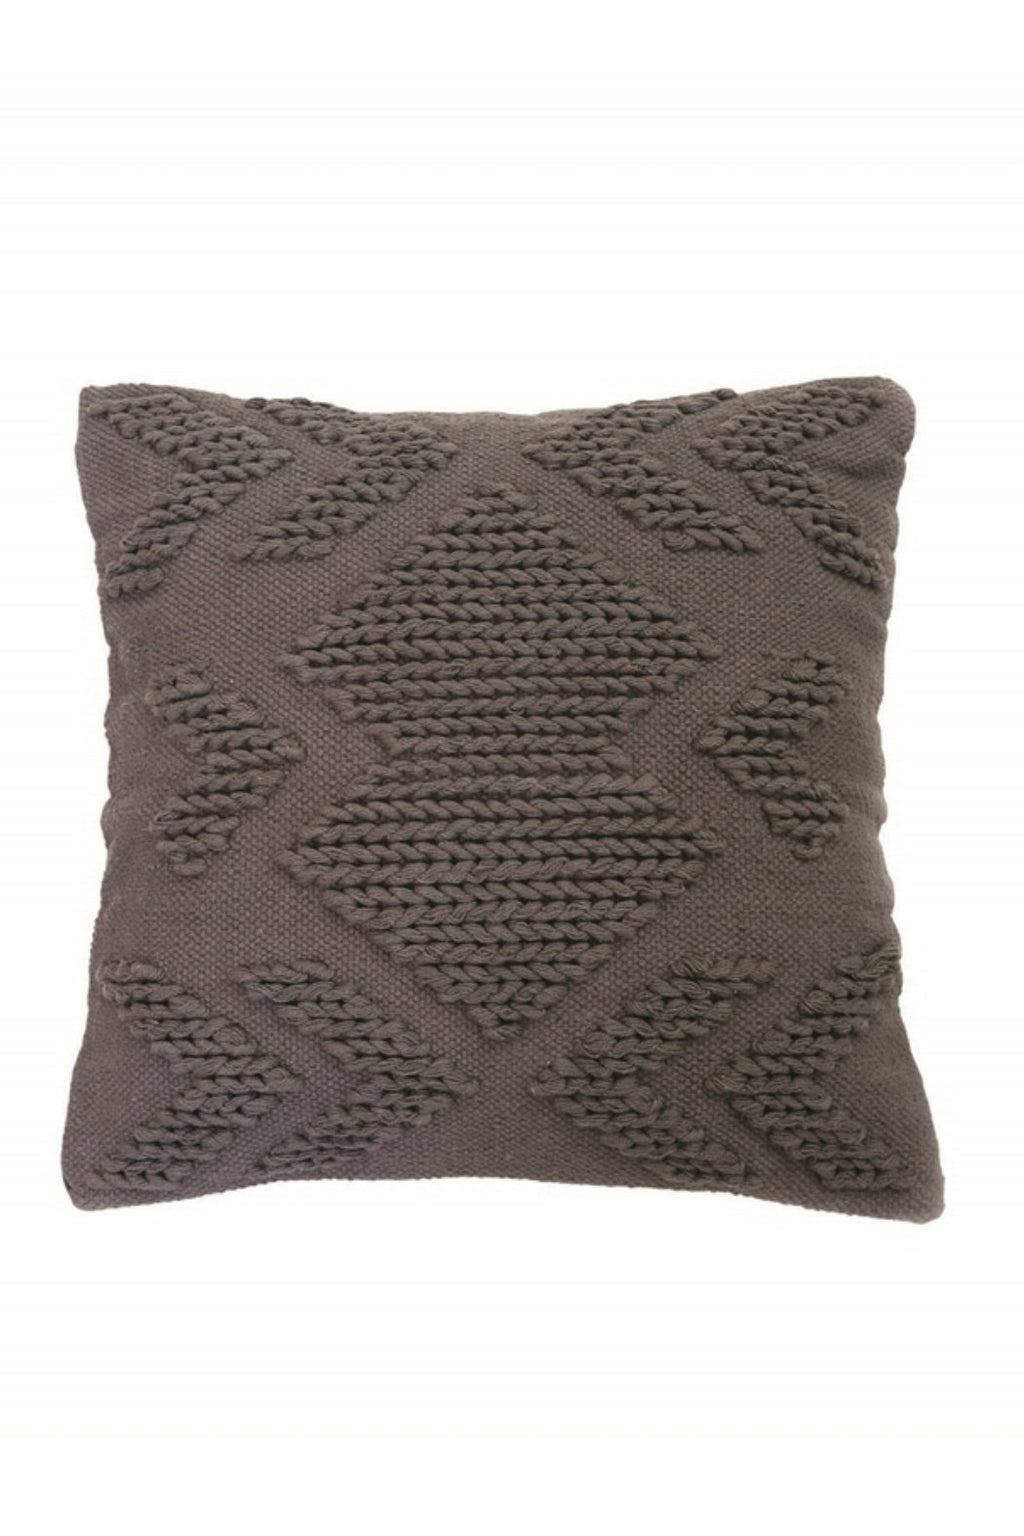 Foreside Nia Pillow in Grey